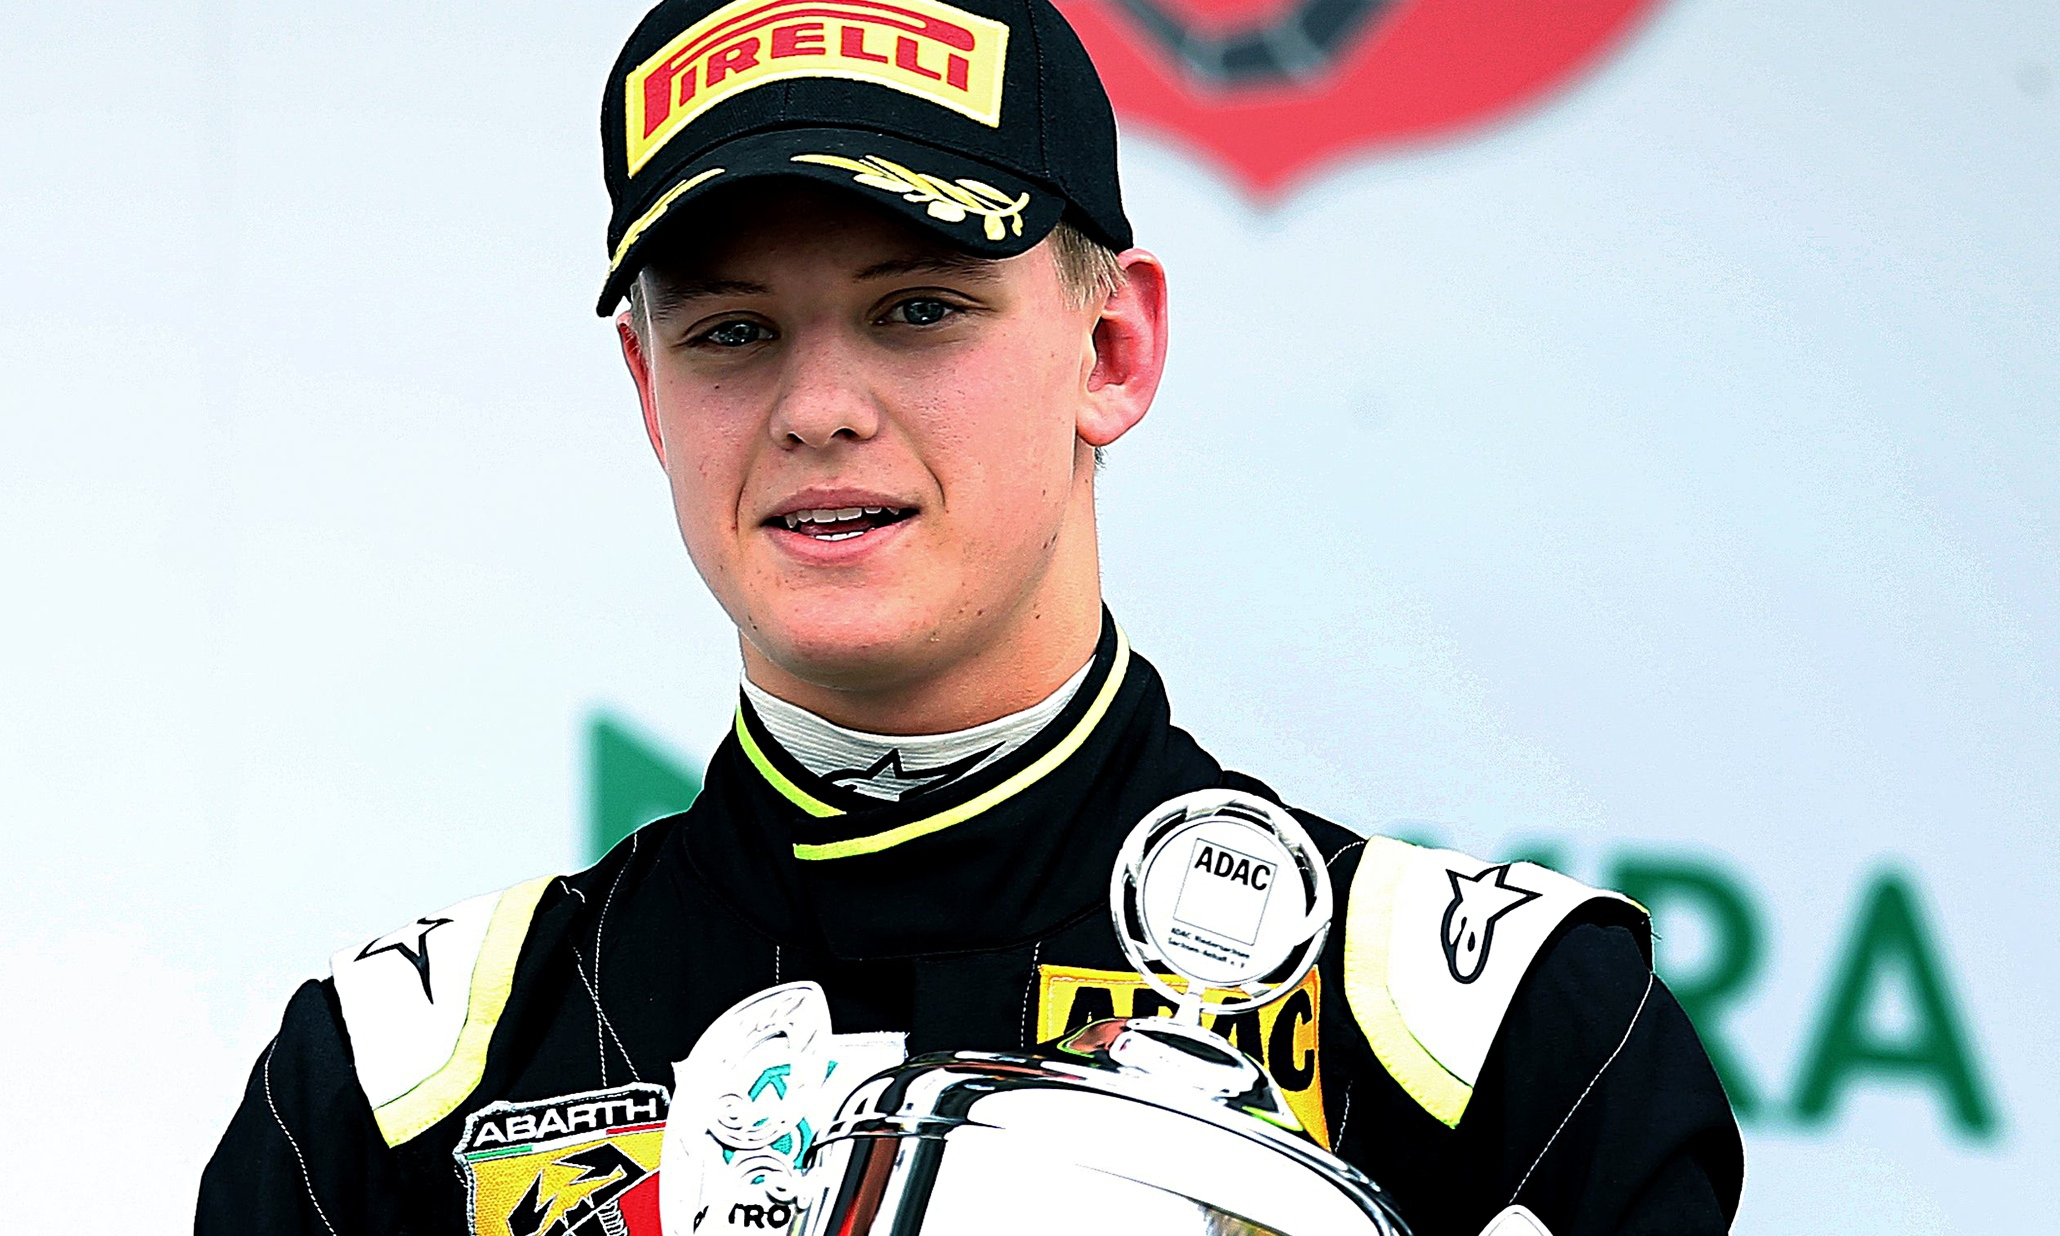 Mick Schumacher earned a  million dollar salary, leaving the net worth at 1 million in 2017